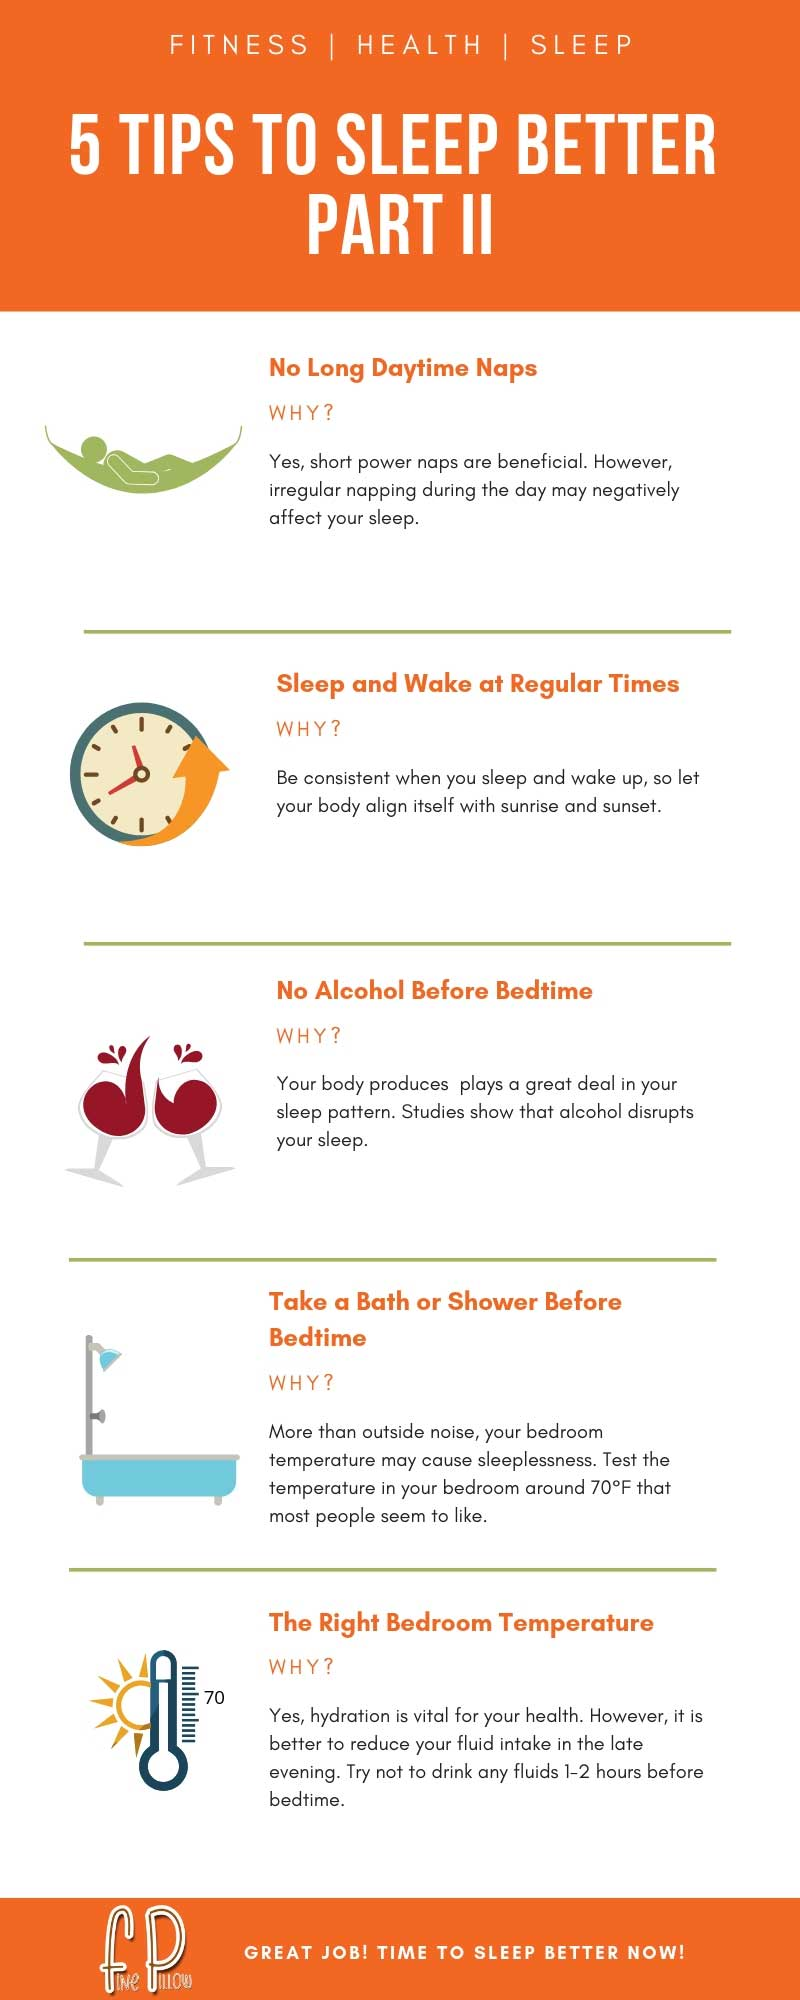 5 Tips to Sleep Better